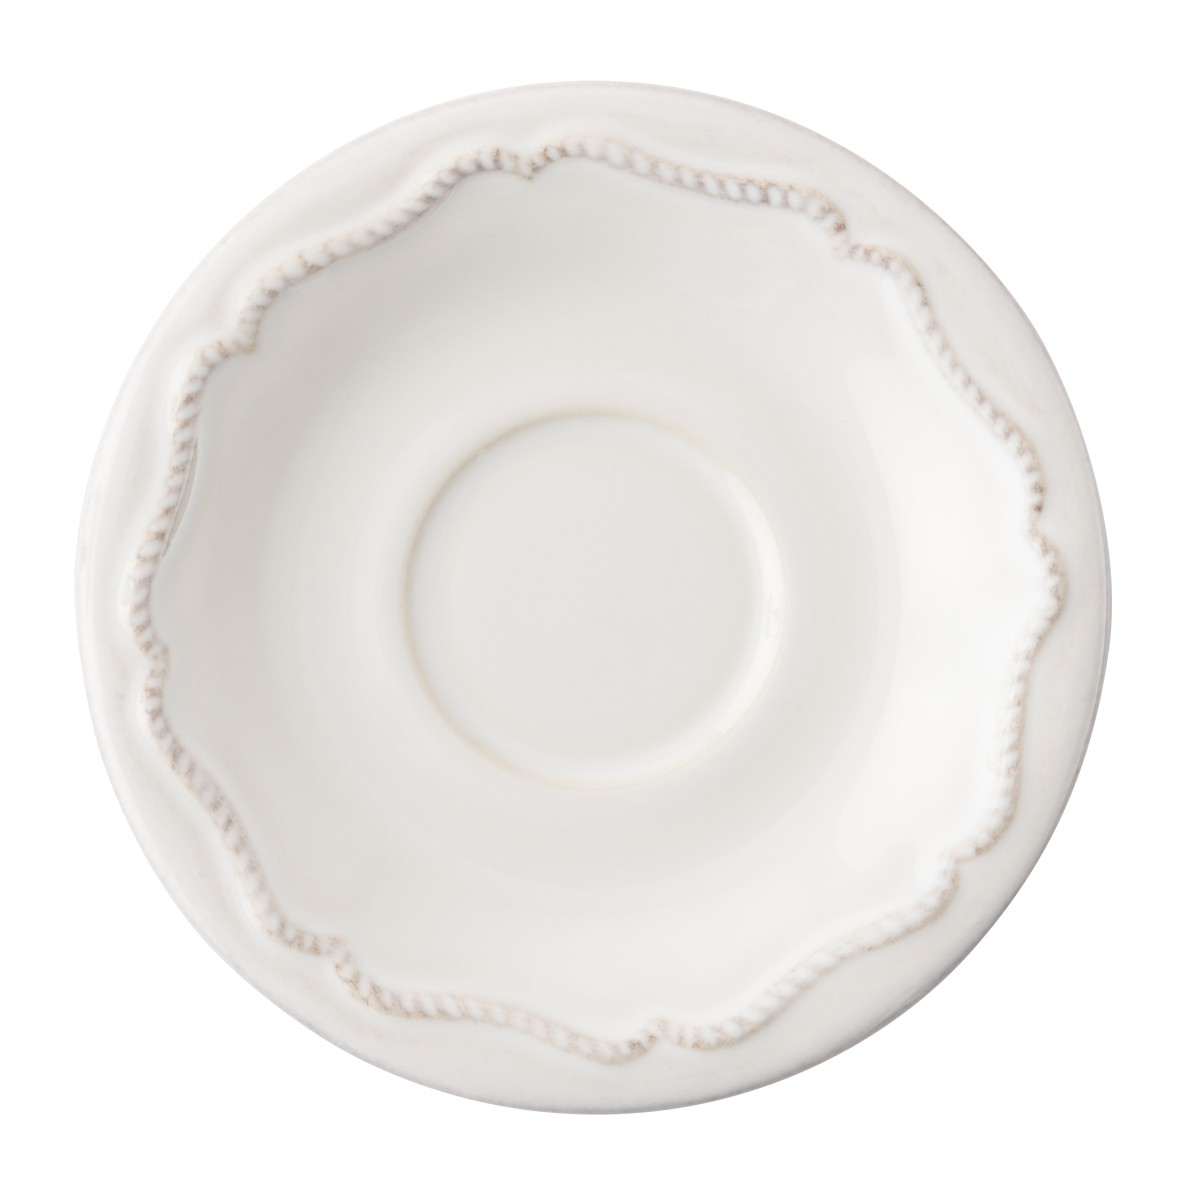 Berry & Thread Whitewash  Demitasse Saucer -3 available